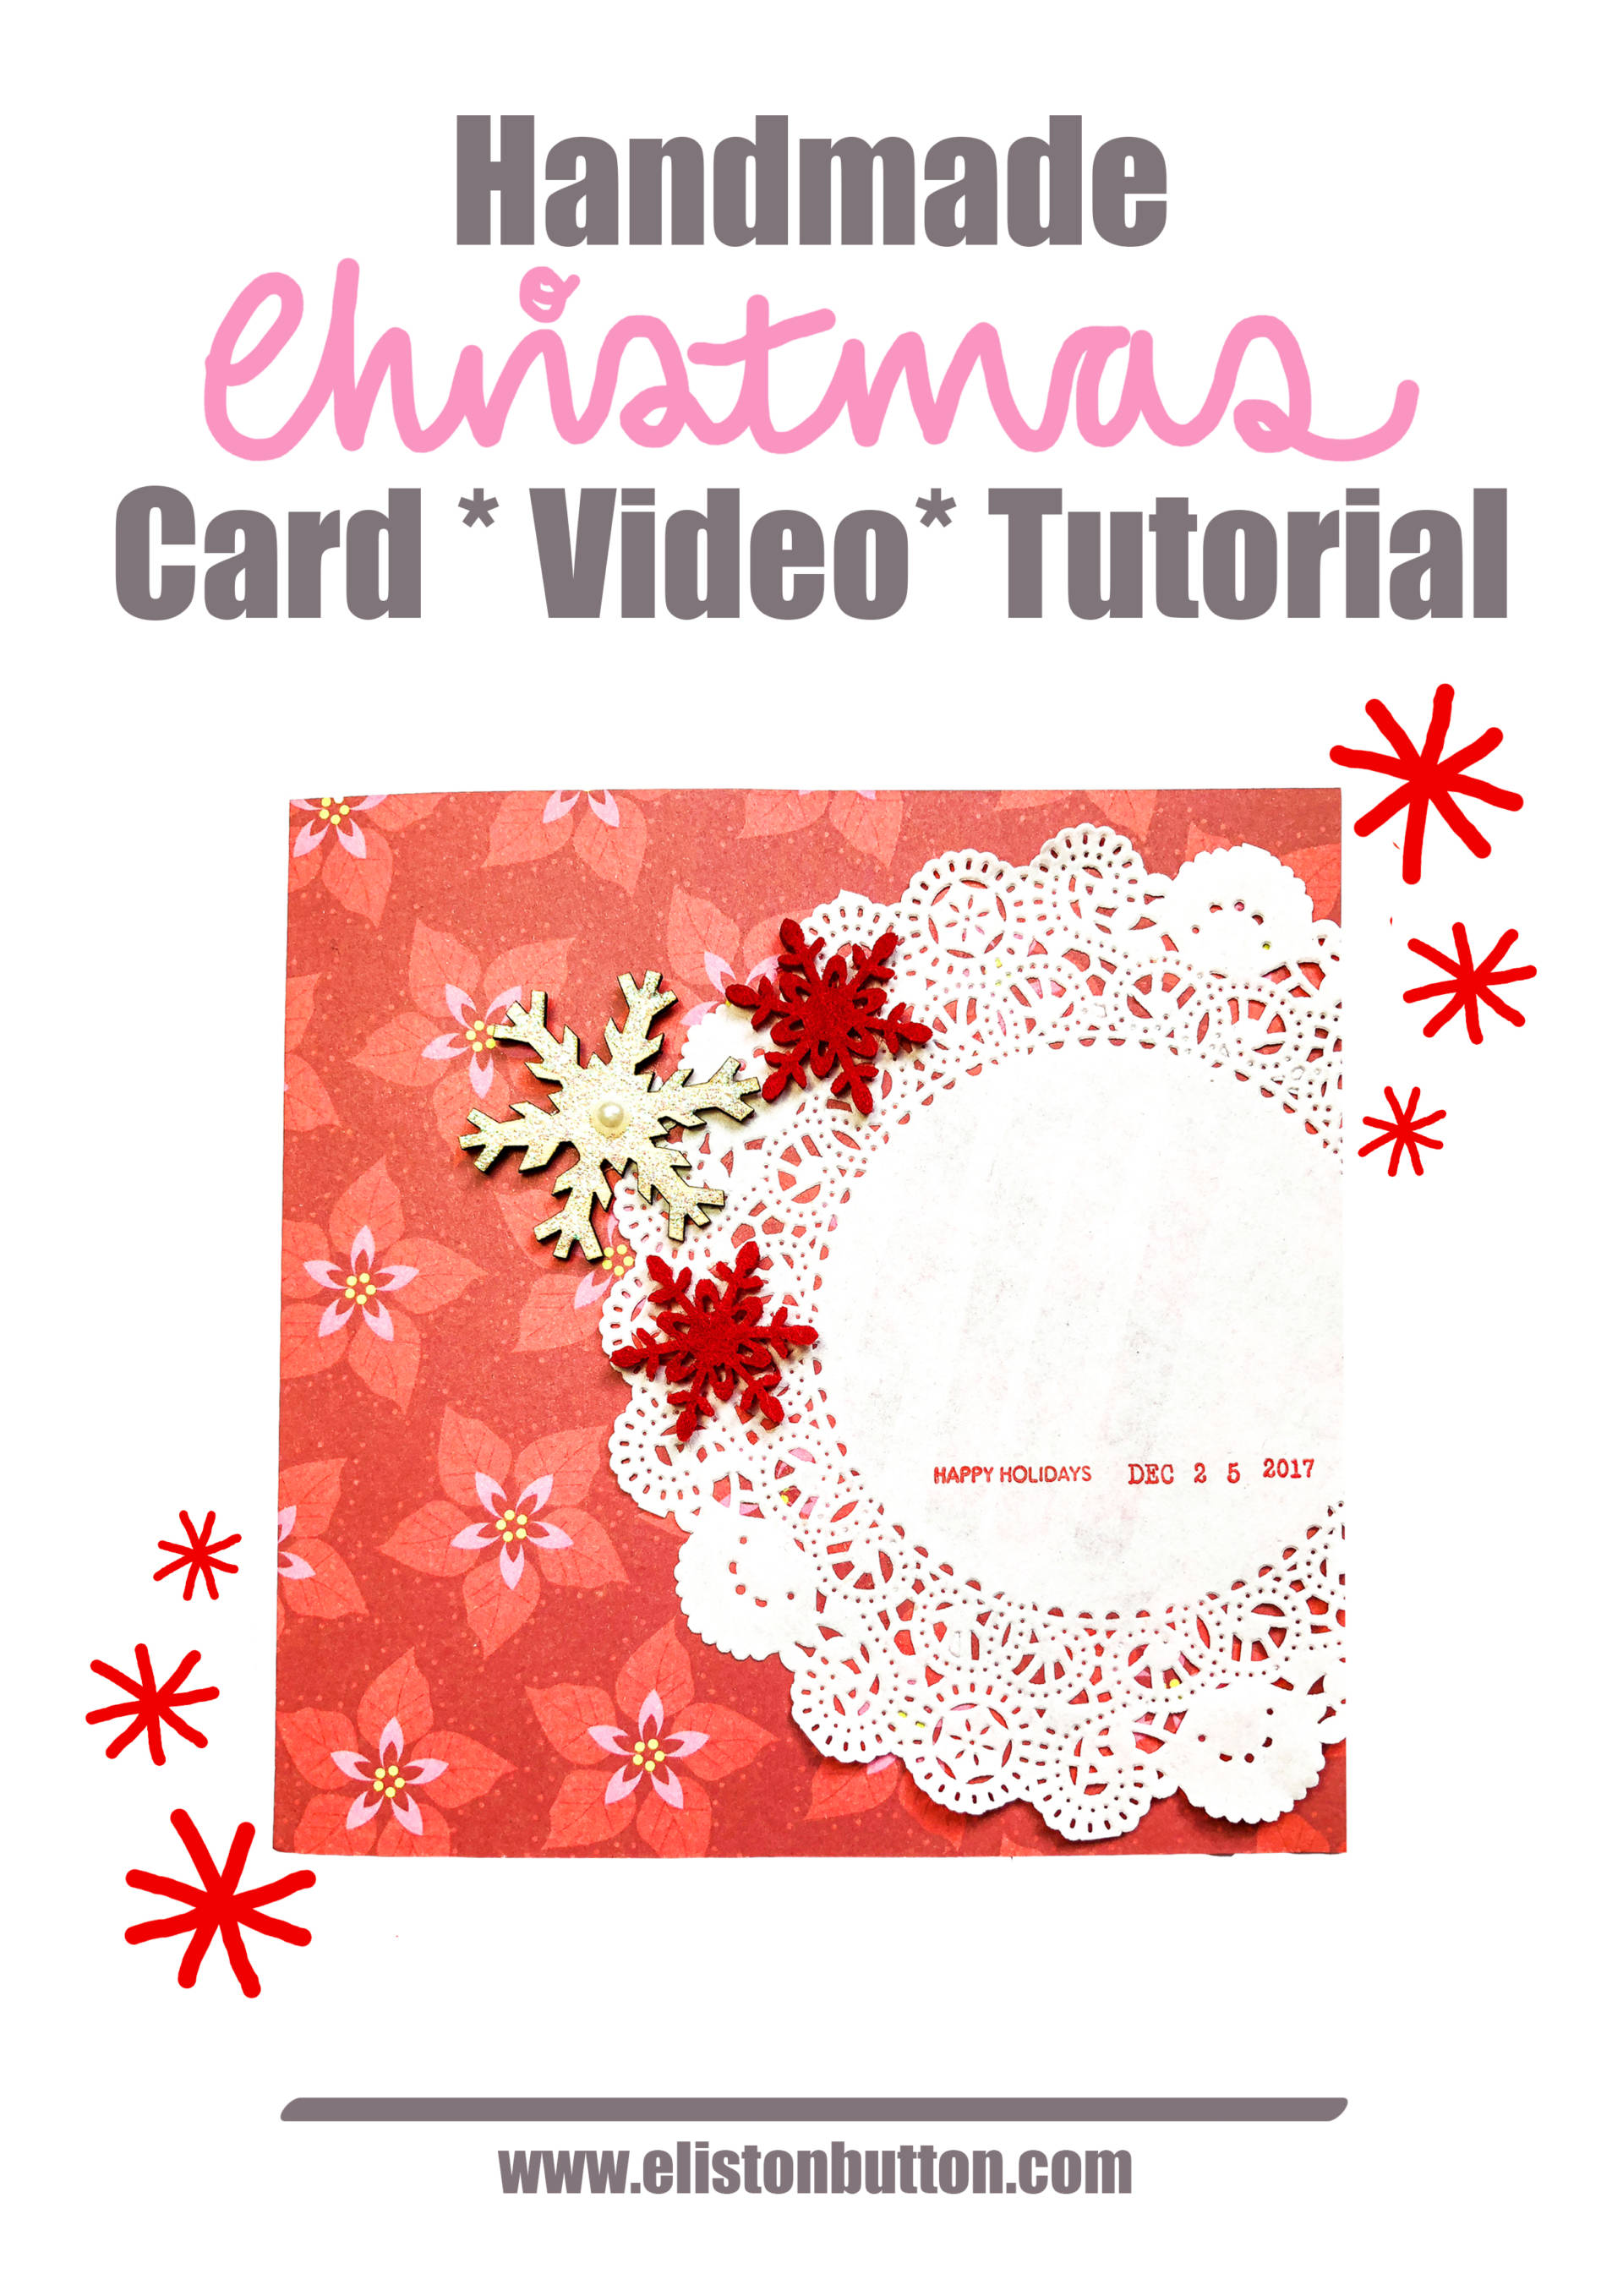 Tutorial Tuesday - A Creative Christmas Card Video Tutorial by Eliston Button - Tutorial Tuesday - A Creative Christmas Card *Video* Tutorial at www.elistonbutton.com - Eliston Button - That Crafty Kid – Art, Design, Craft & Adventure.